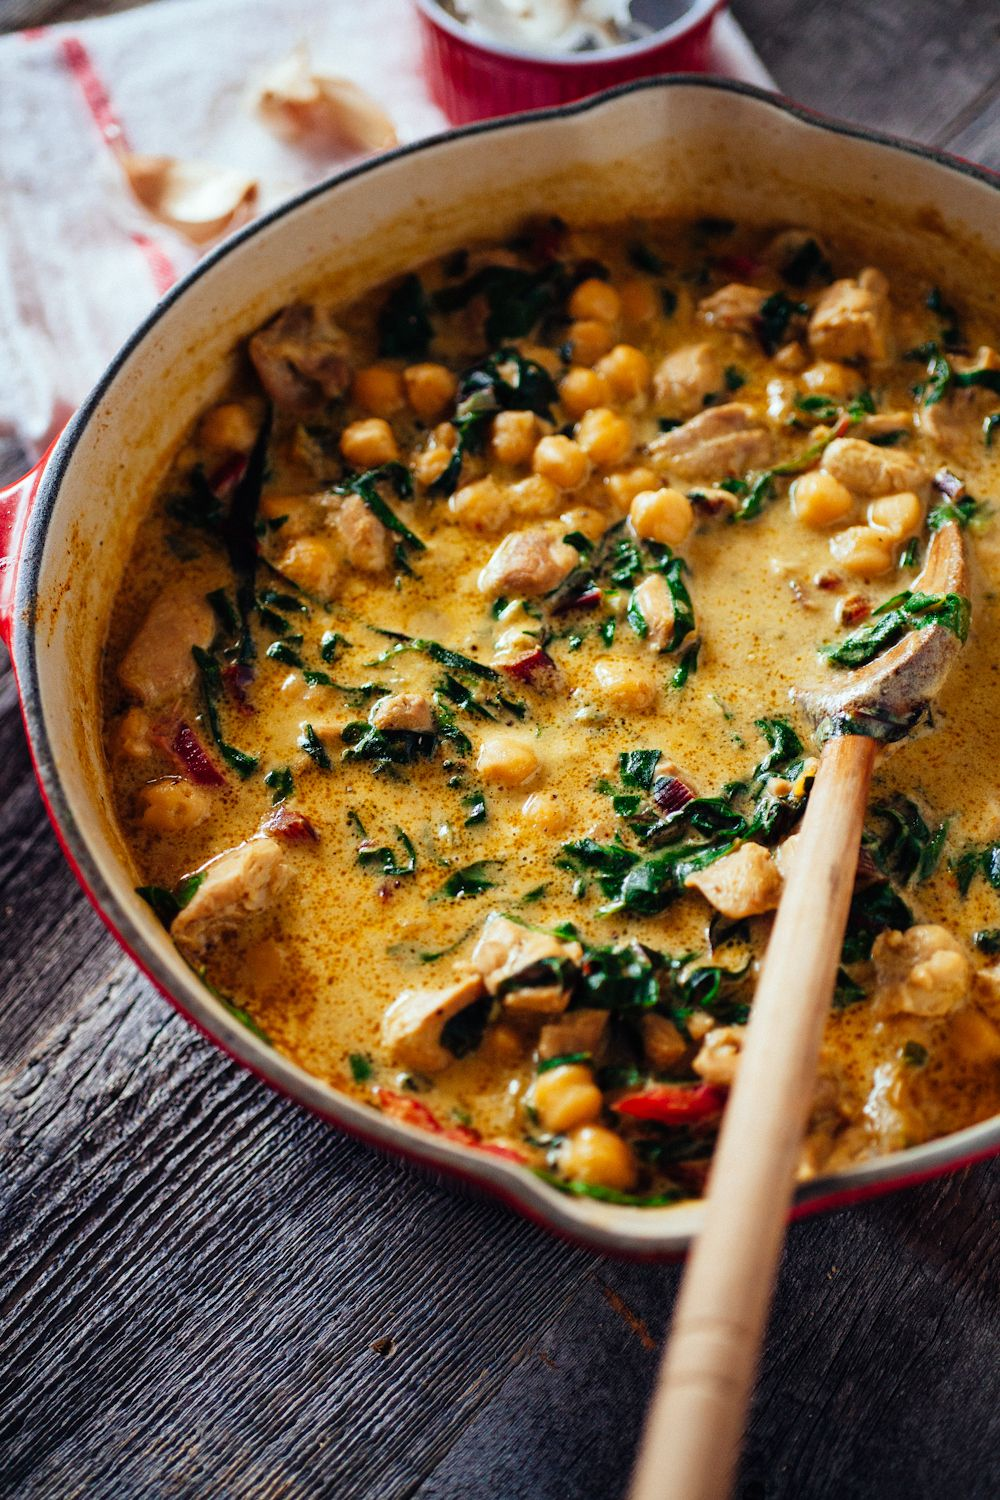 Green chickpea and chicken coconut curry with Swiss chard.